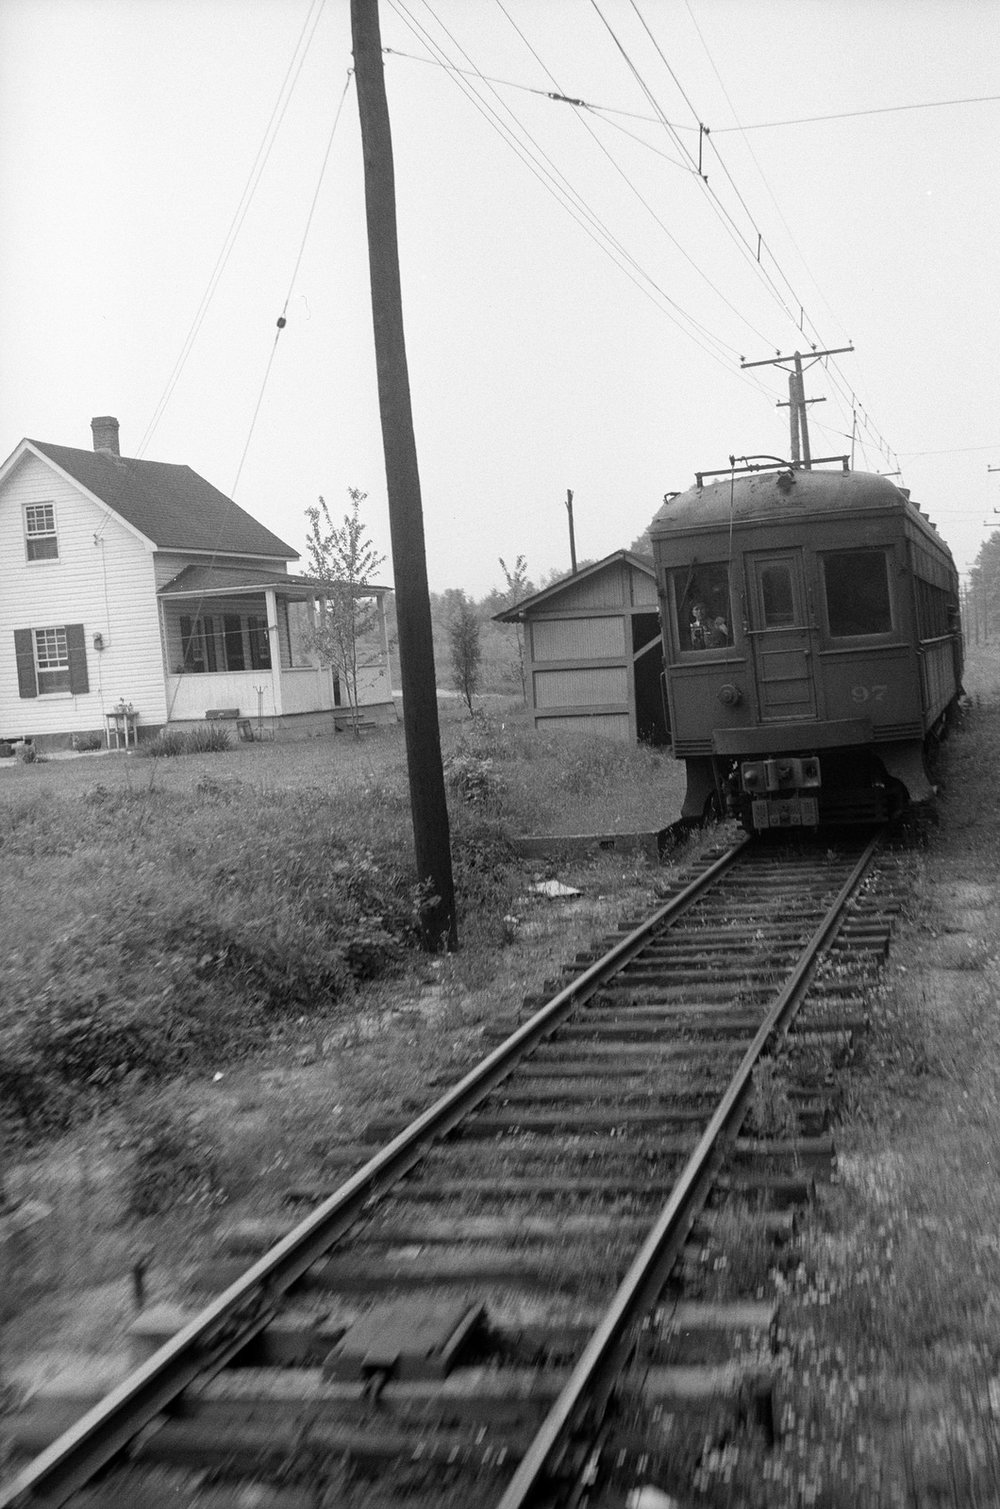 Baltimore & Annapolis Railroad Car #97 passing Marley Station. Maryland Circa 1940's. Source: Hugh Hayes Collection.